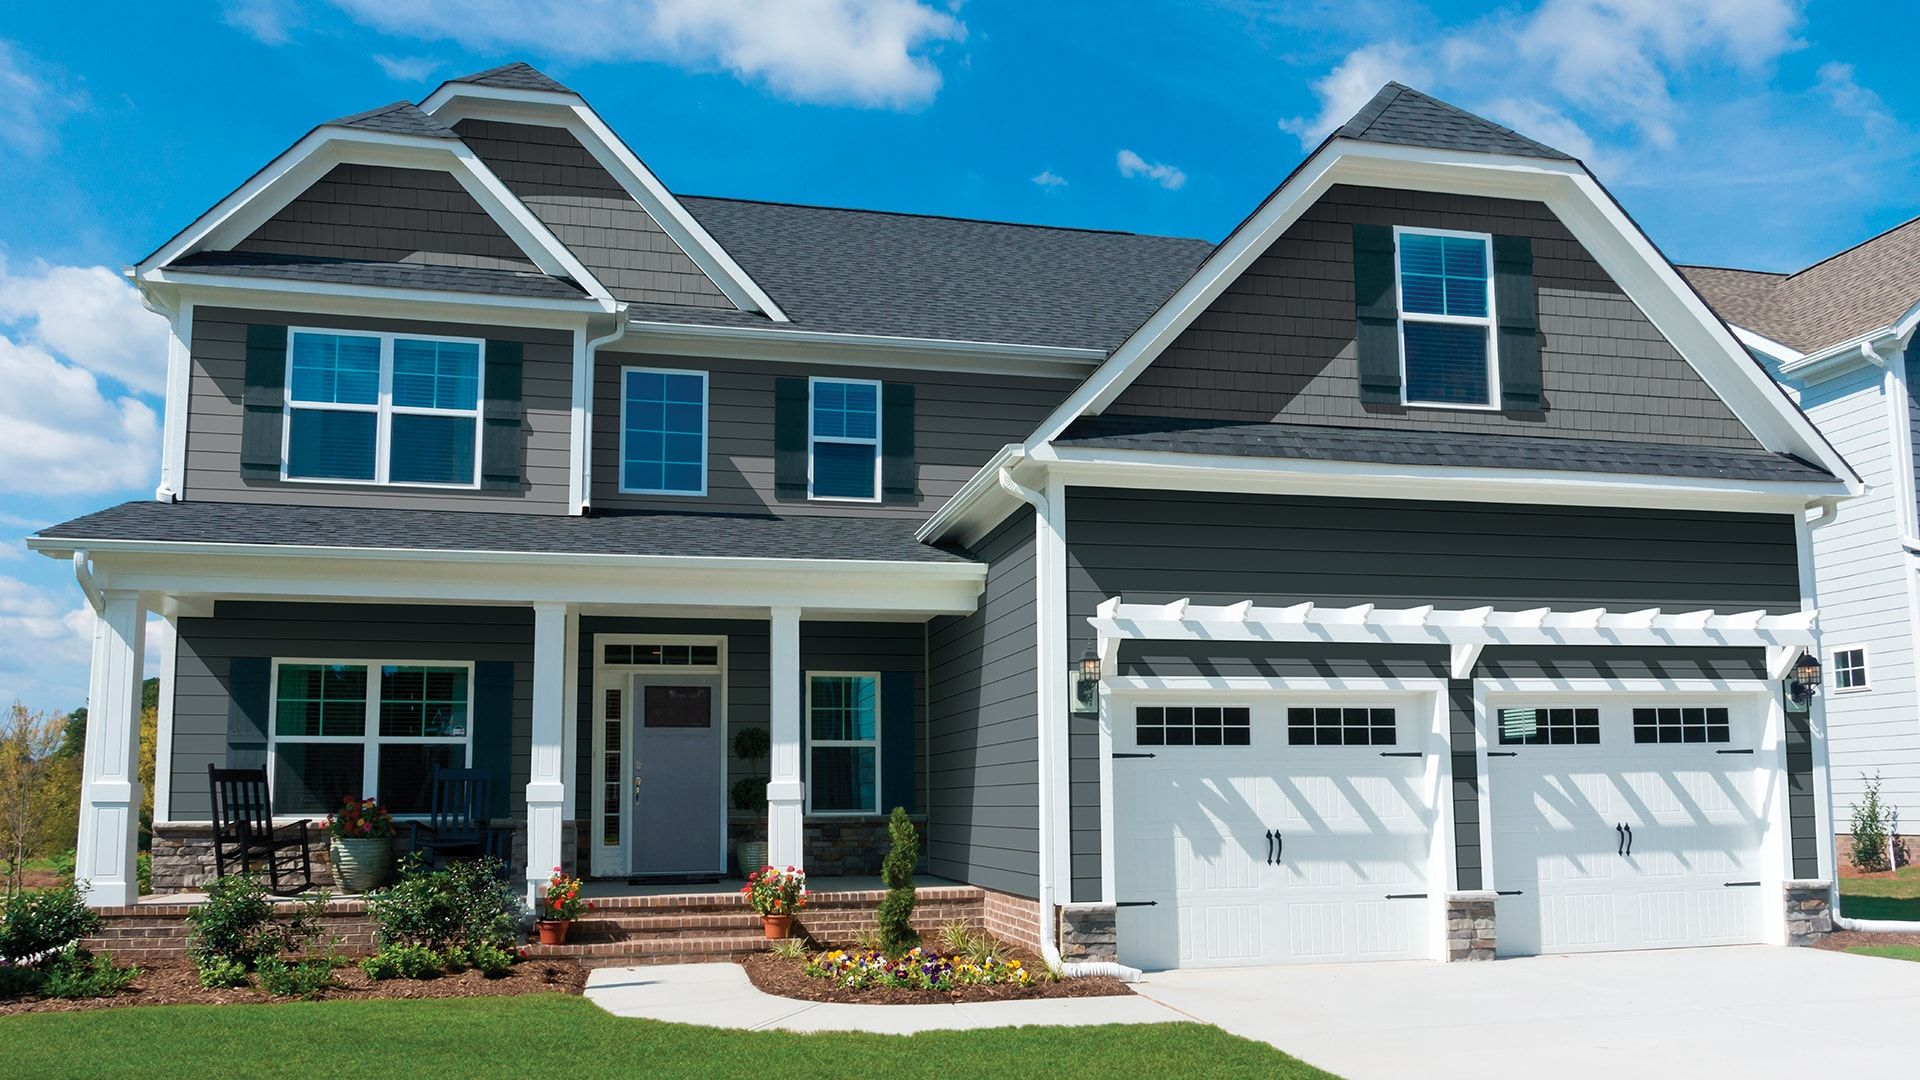 Gallery Royal Building Solutions Royal Haven D7 In Storm Midnight Surf House Siding Insulated Vinyl Siding Blue Siding